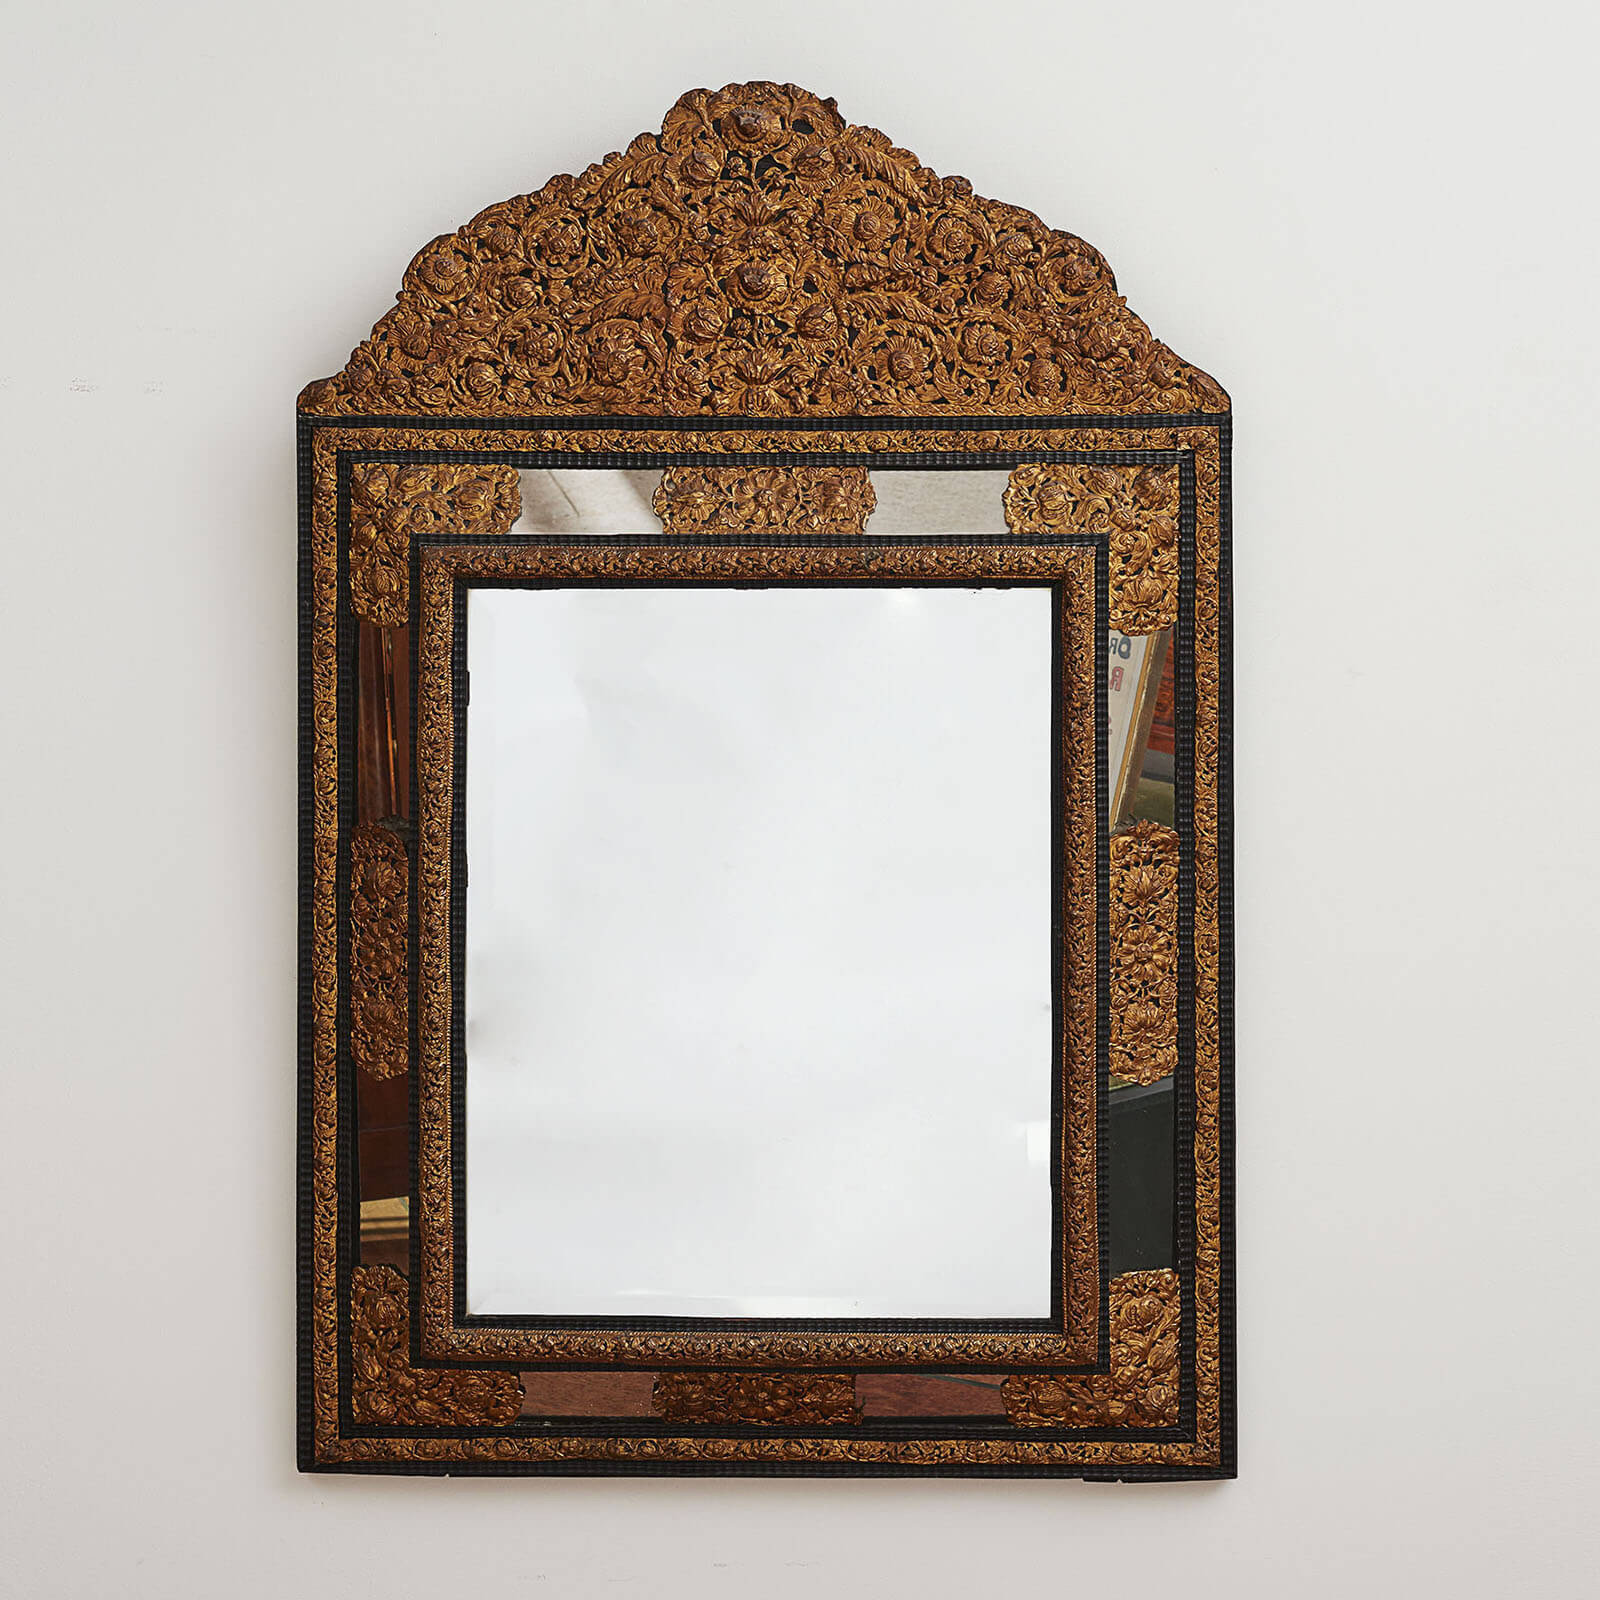 An Italian Baroque Gilded, Mirrored & Ebonized Mirror, First Half 18th Century